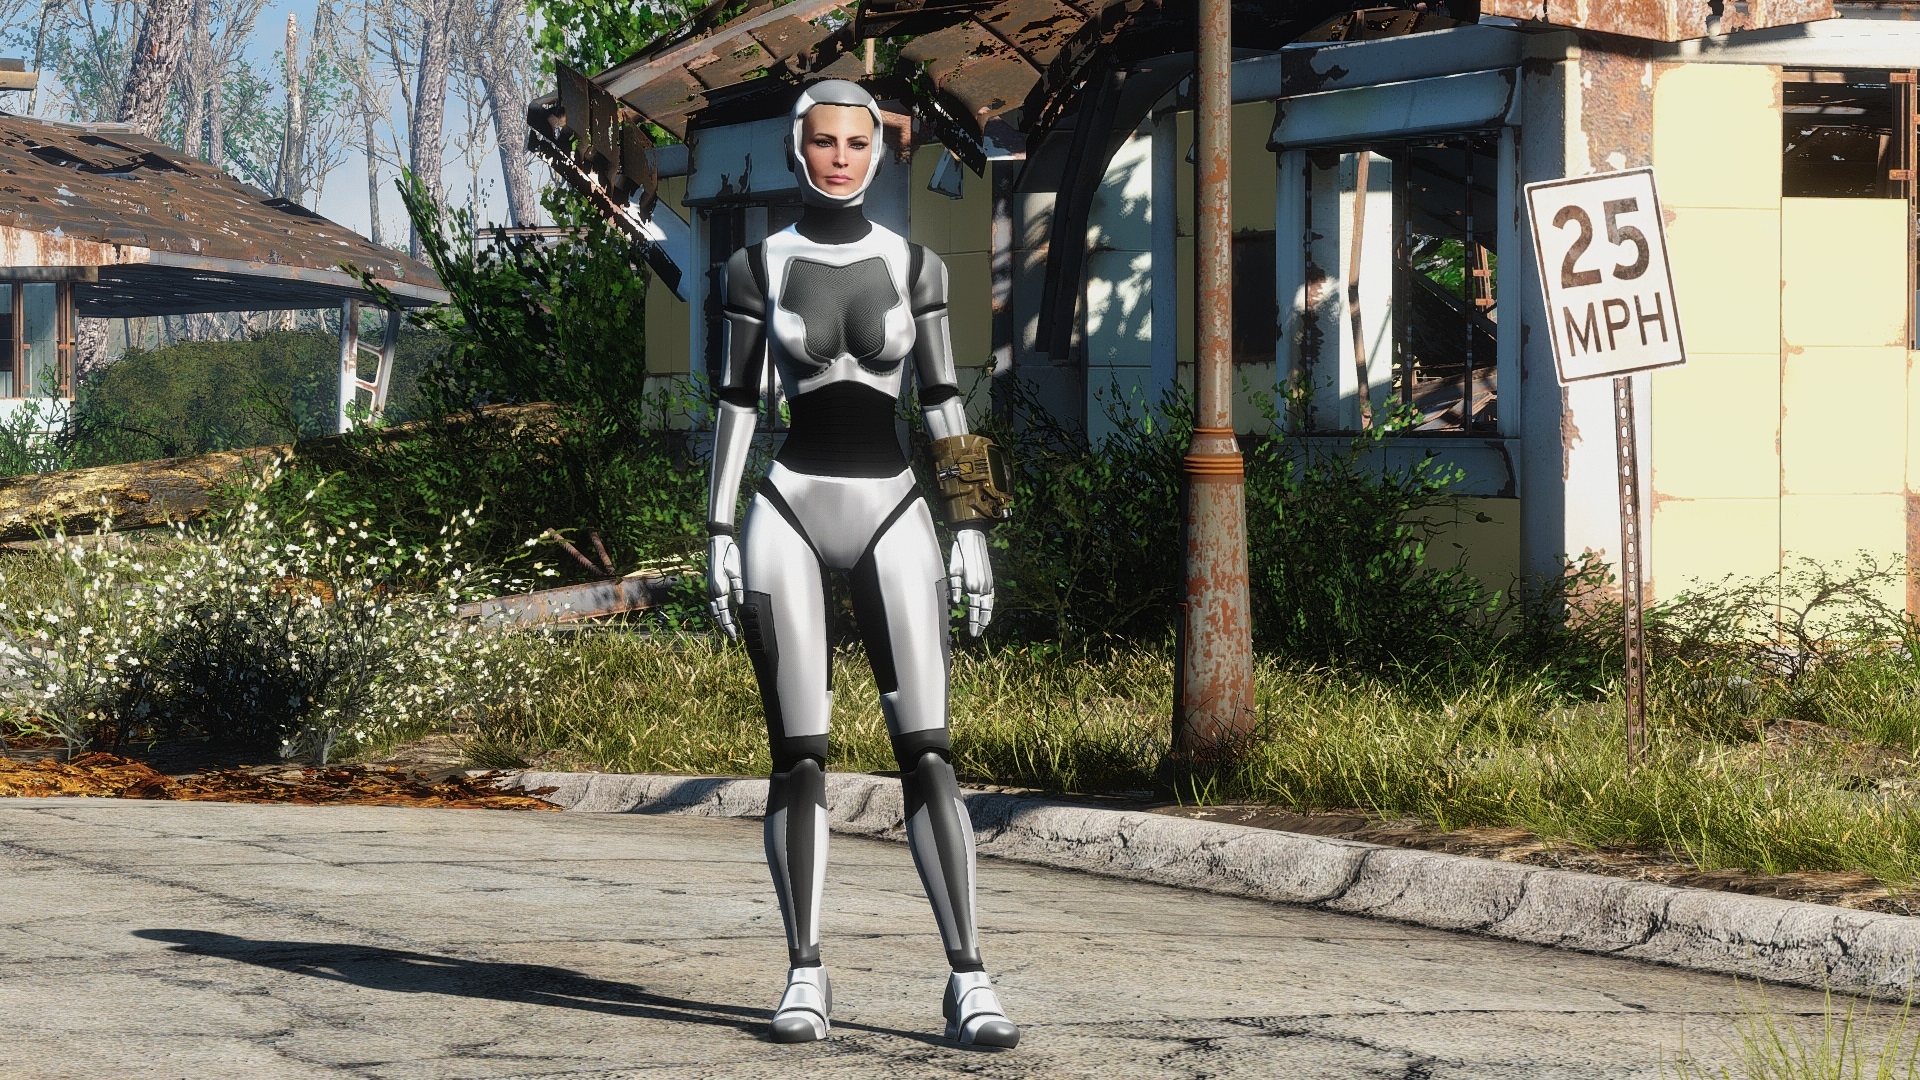 Fallout 4 Mods Weekly: Dream Homes and Bodies! — Your Site Title